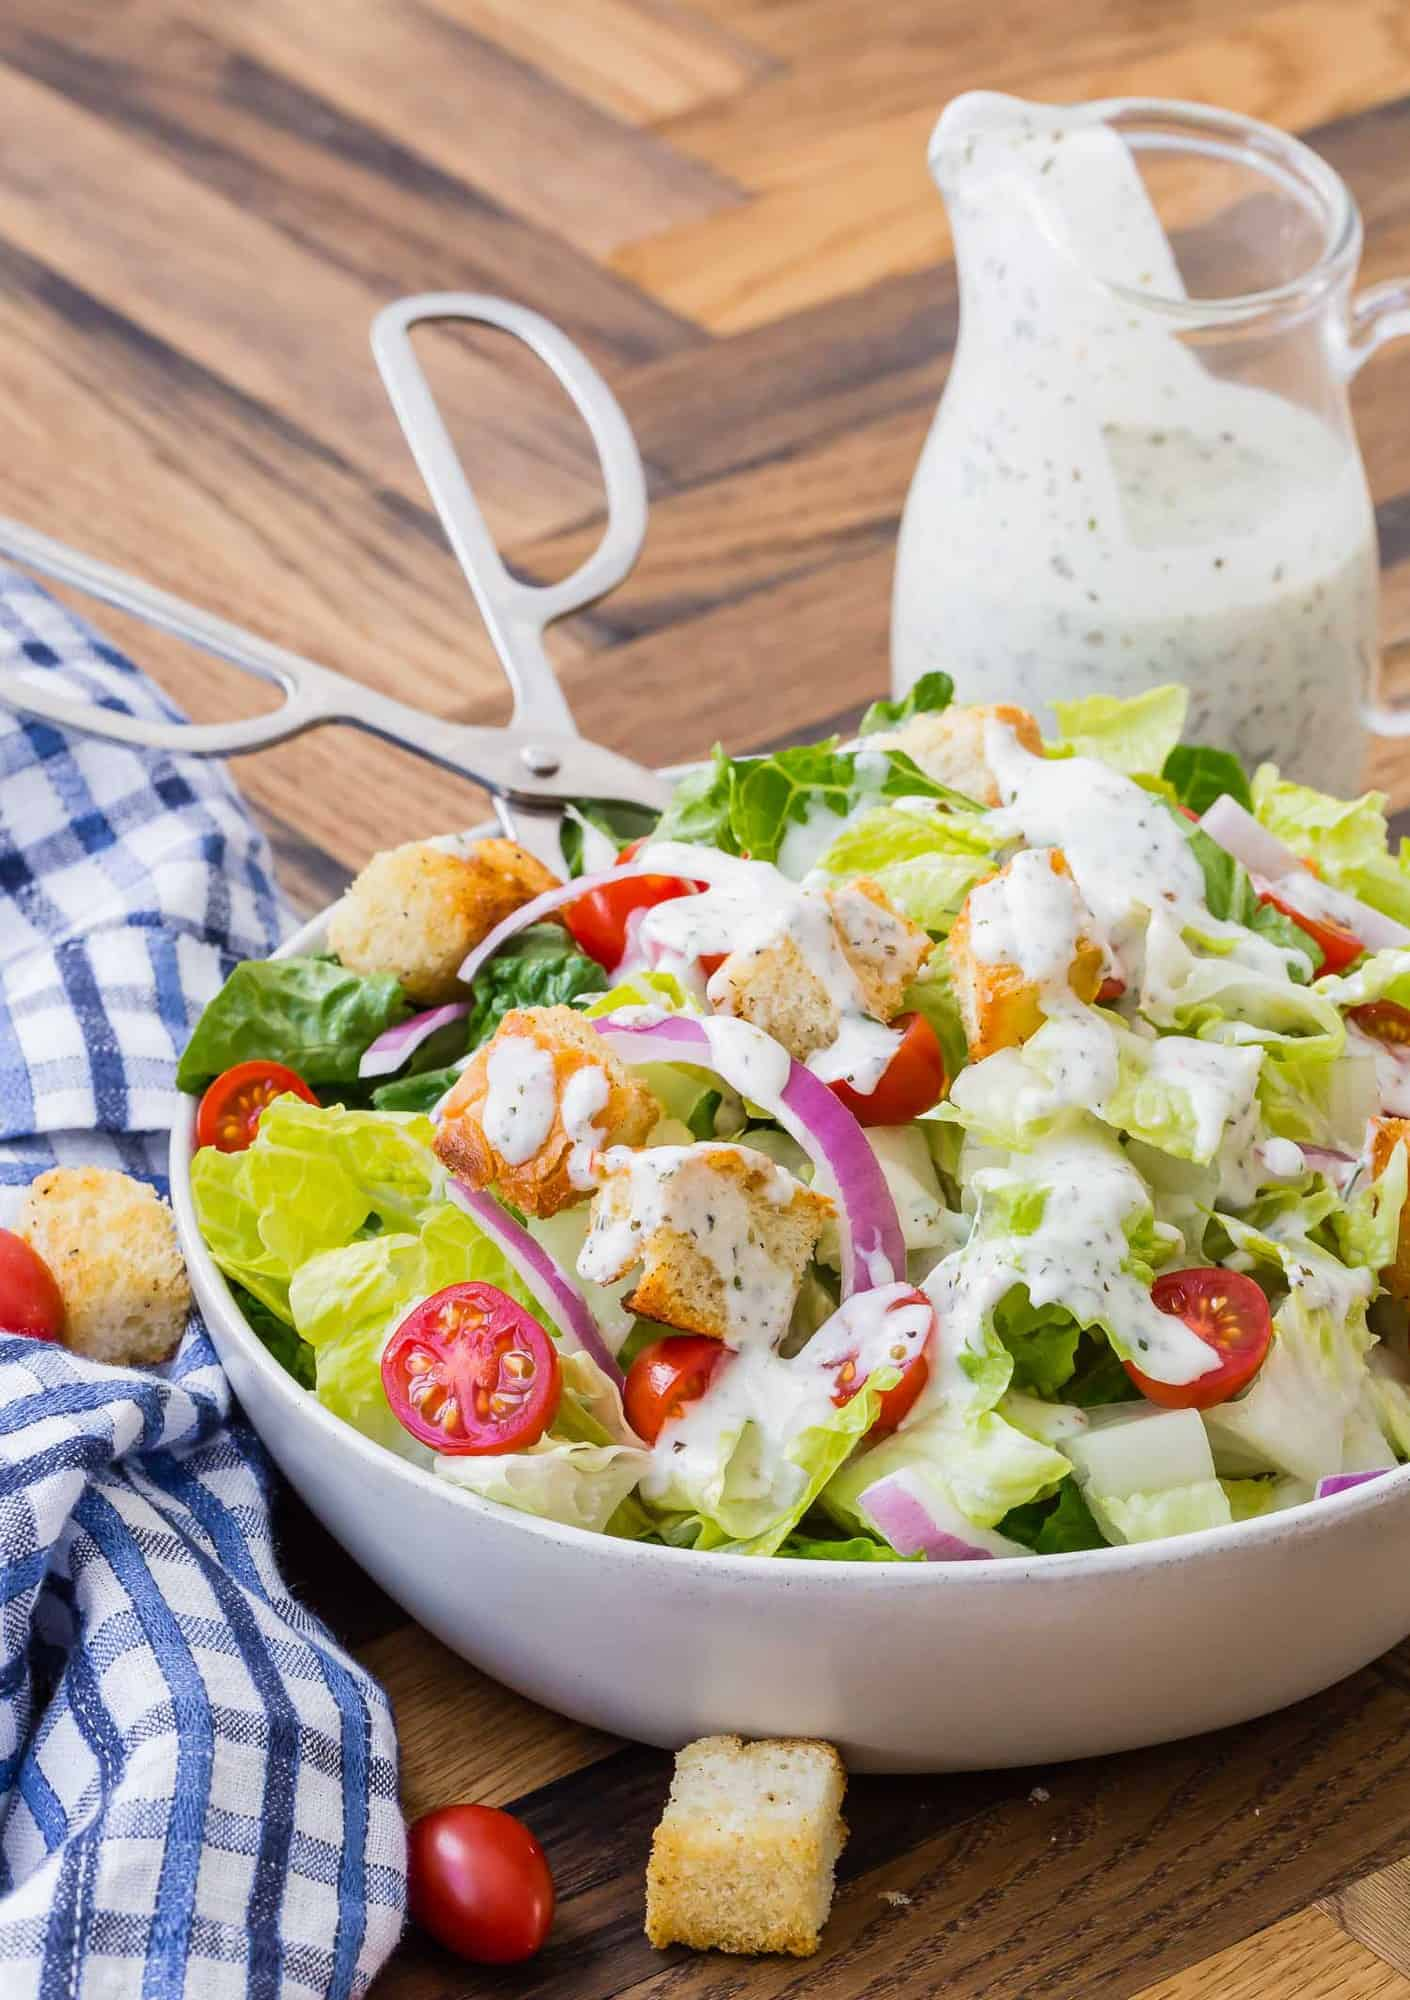 Tossed salad with tongs, small glass pitcher of creamy dressing in the background.